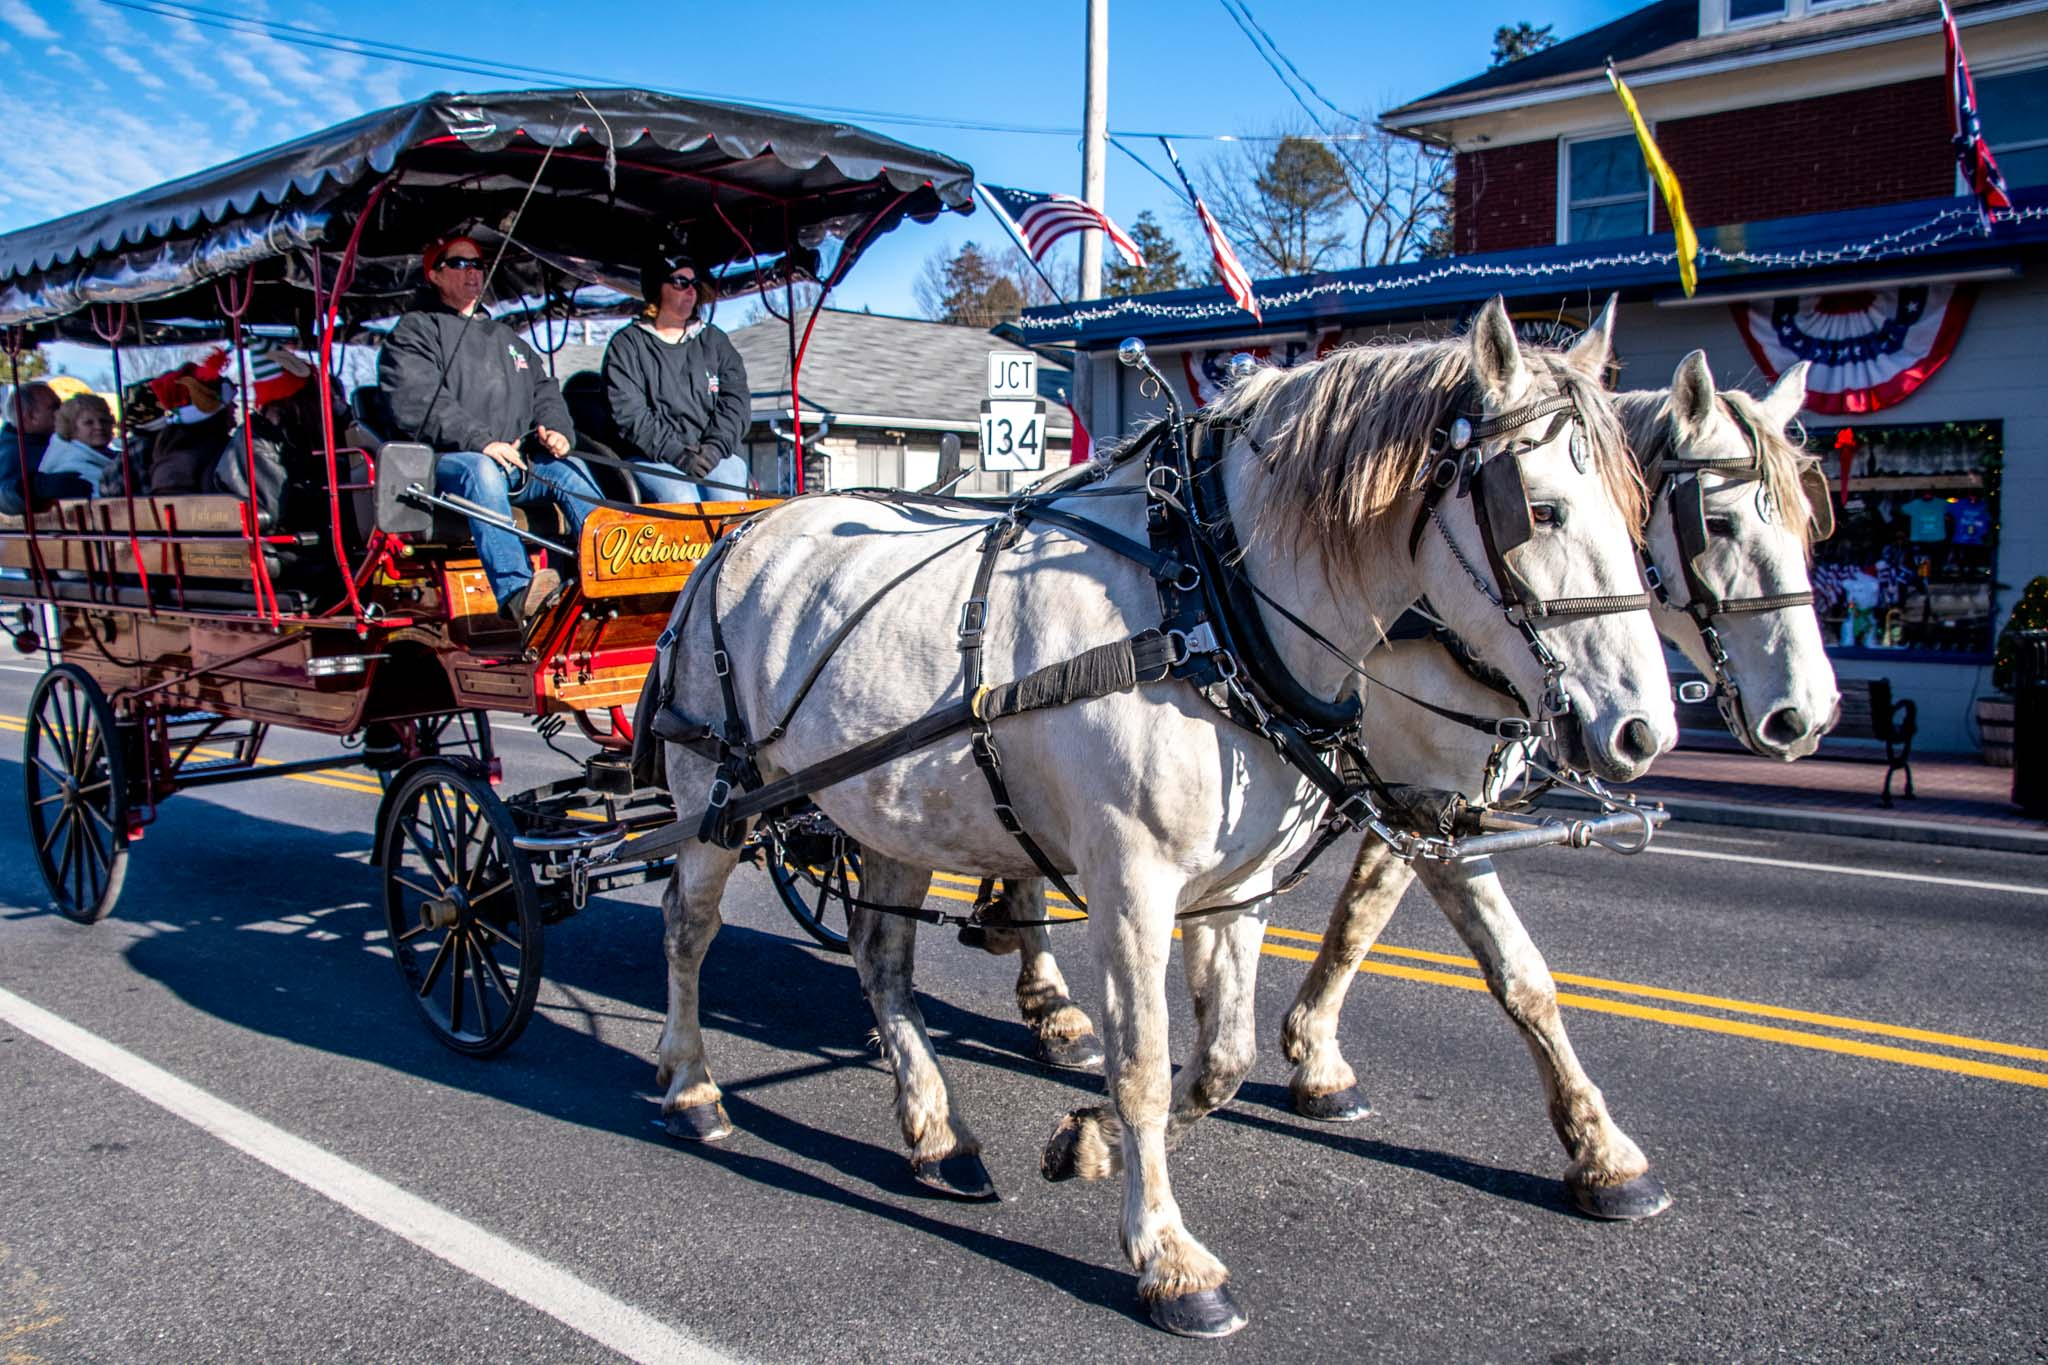 Horse-drawn carriage carries visitors in the streets of Gettysburg at Christmas